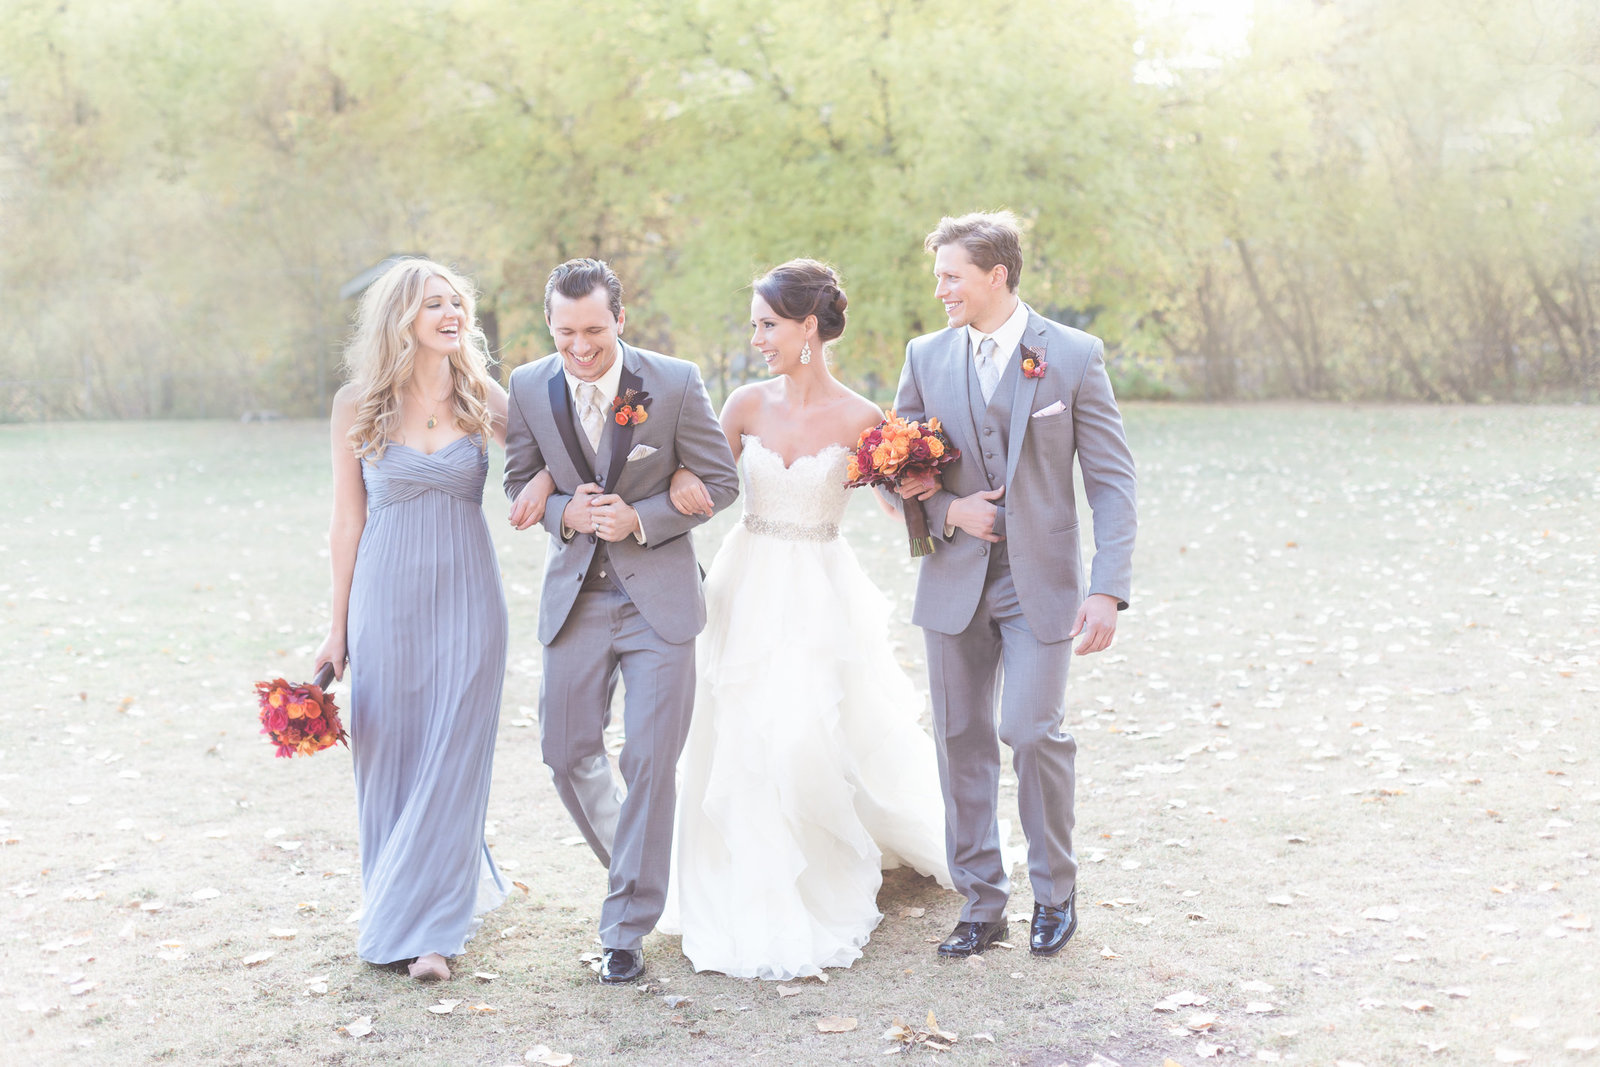 Victoria Blaire Best Kelowna Okanagan Wedding Photographer Whimsical|Romantic|Sentimental-4